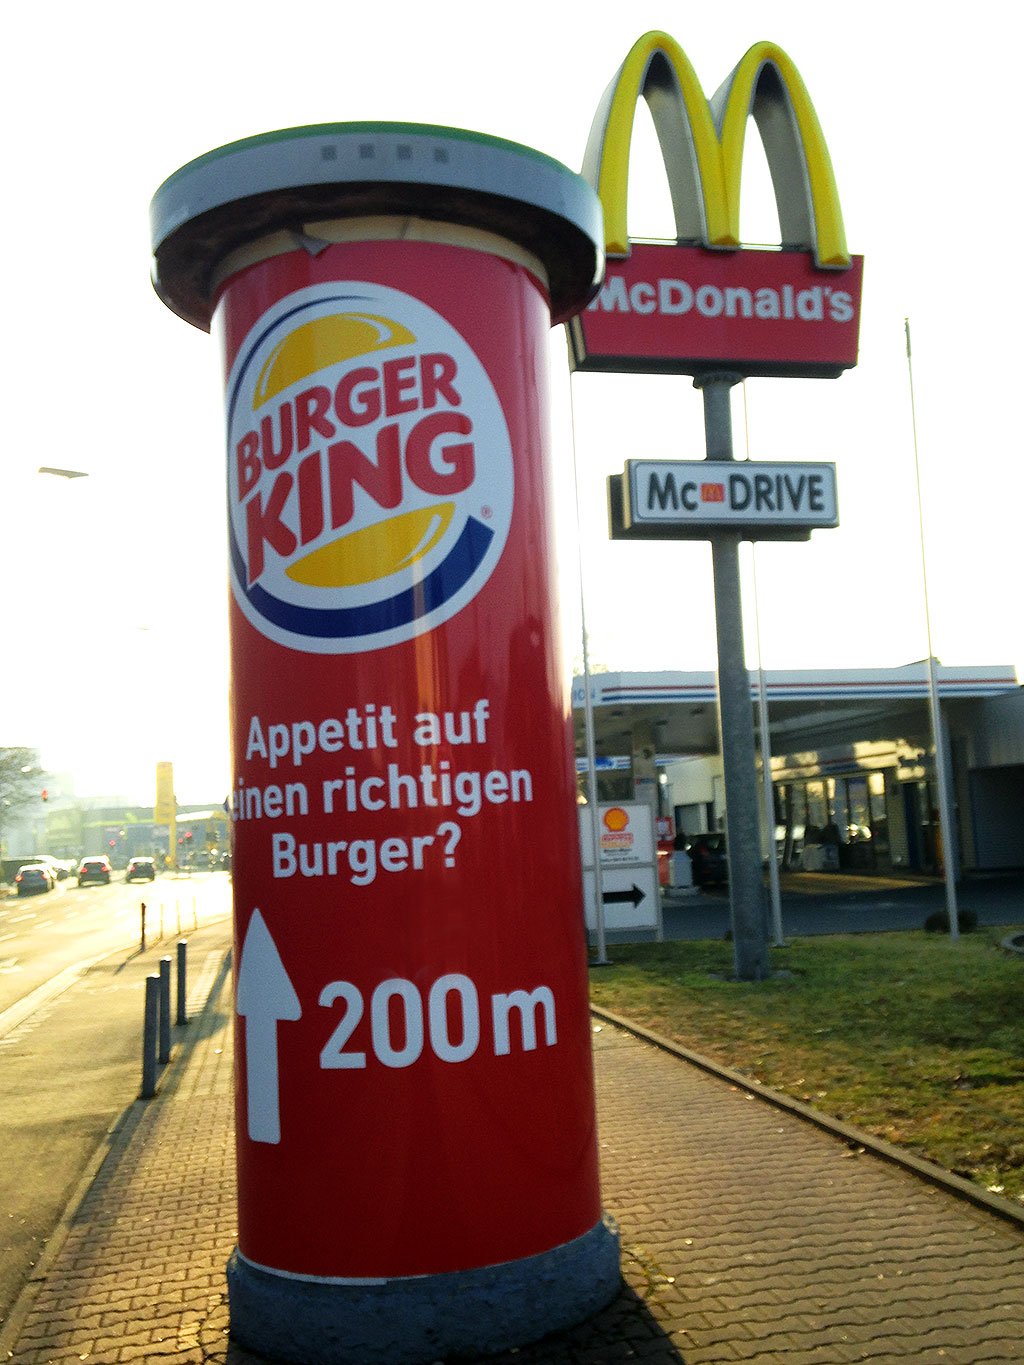 burger king werbung vor mc donald 39 s restaurant stadtkind. Black Bedroom Furniture Sets. Home Design Ideas